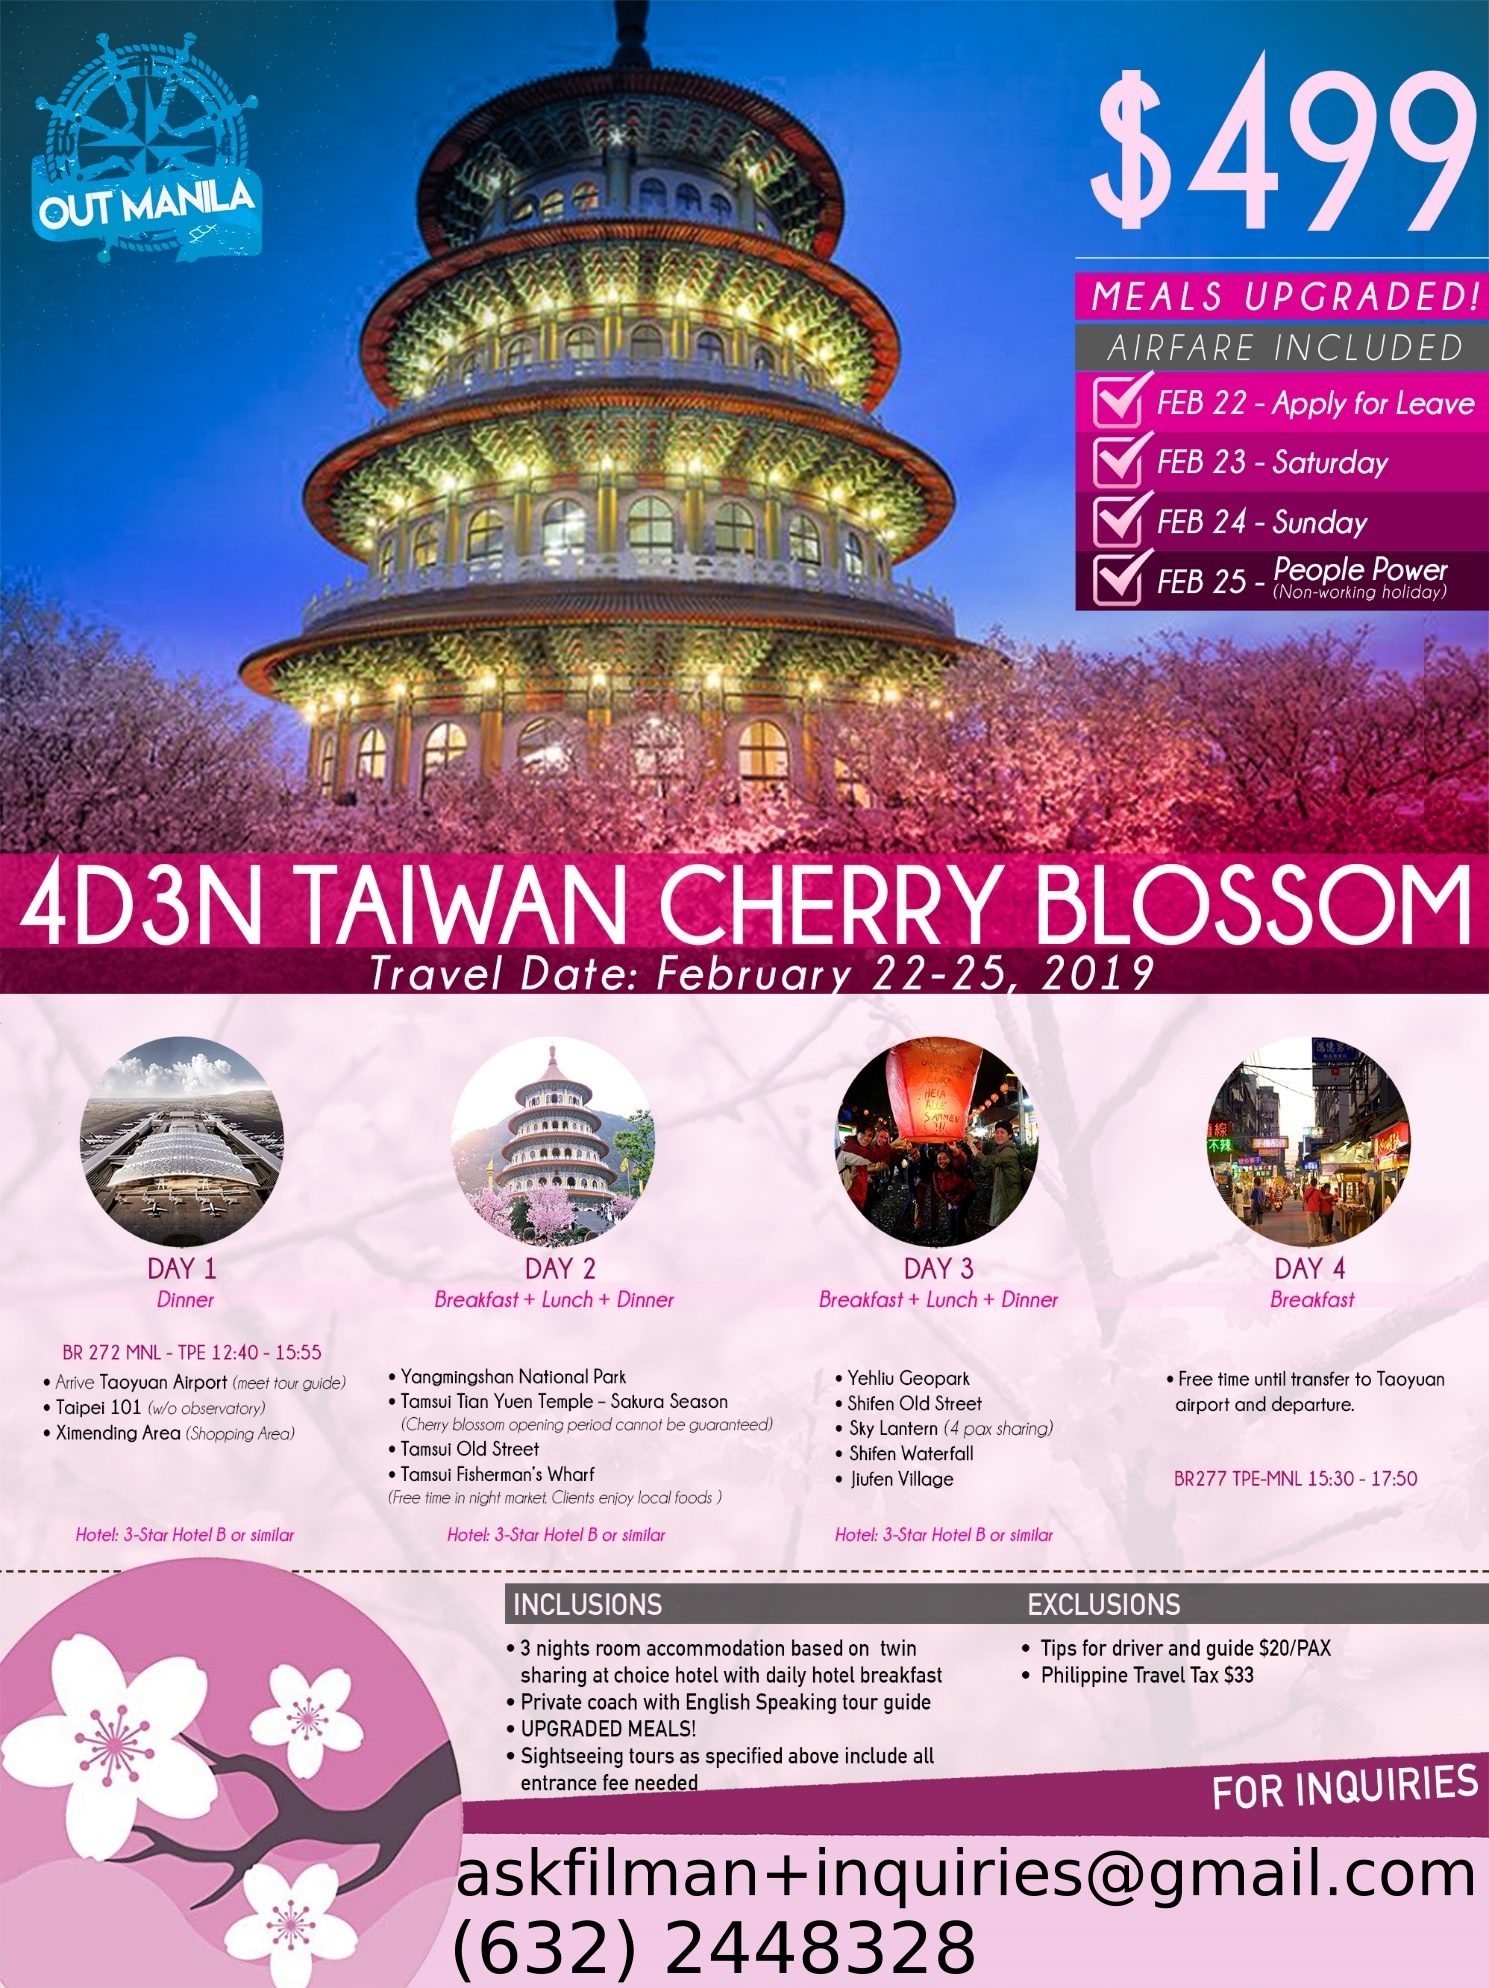 2019 4 Days 3 Nights Taiwan Cherry Blossom - FILMAN TRAVEL CENTER, INC